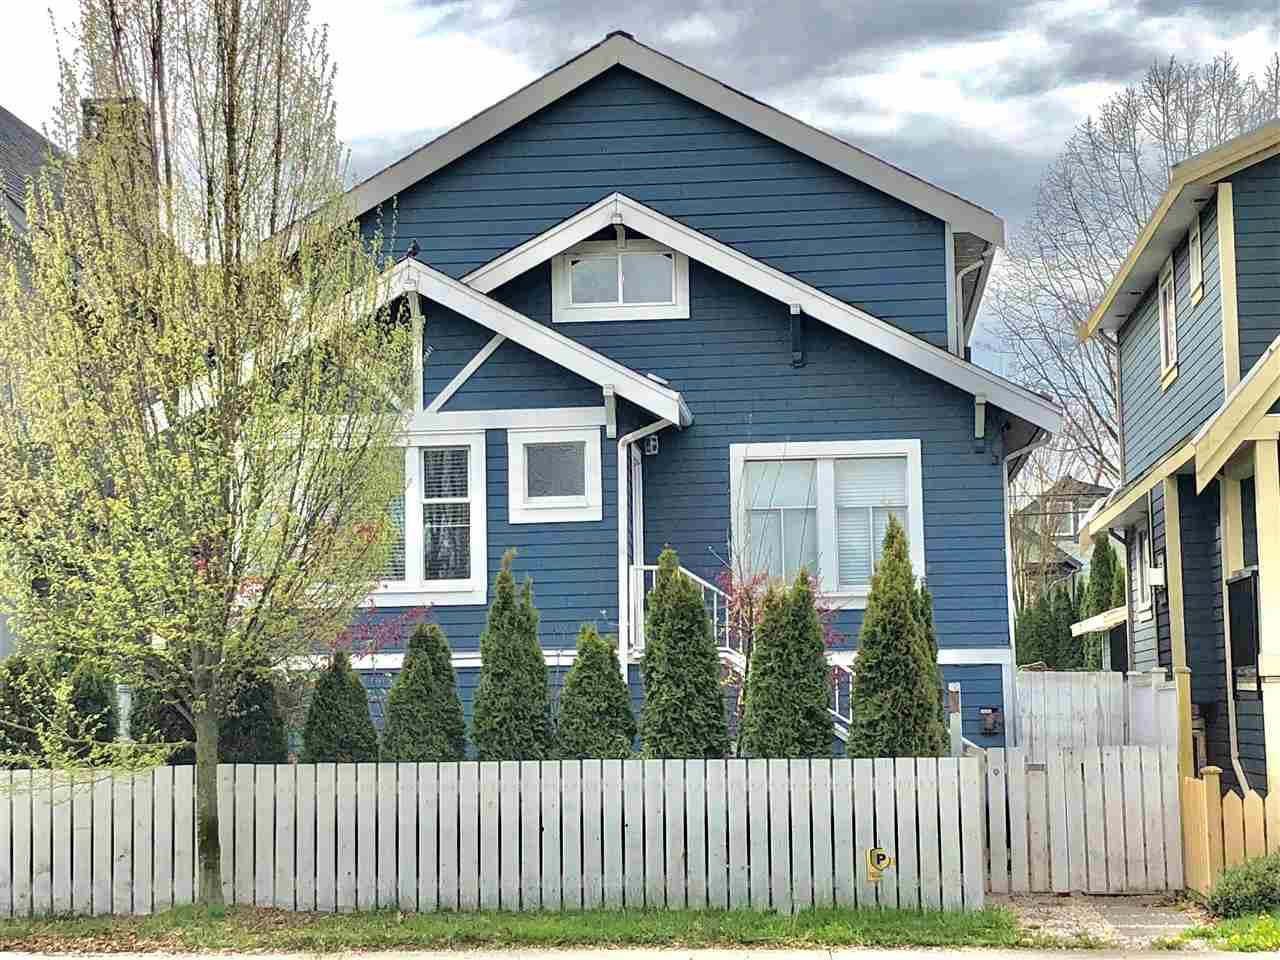 2203 2nd Avenue, Vancouver   Sold on Feb 26   Zolo.ca